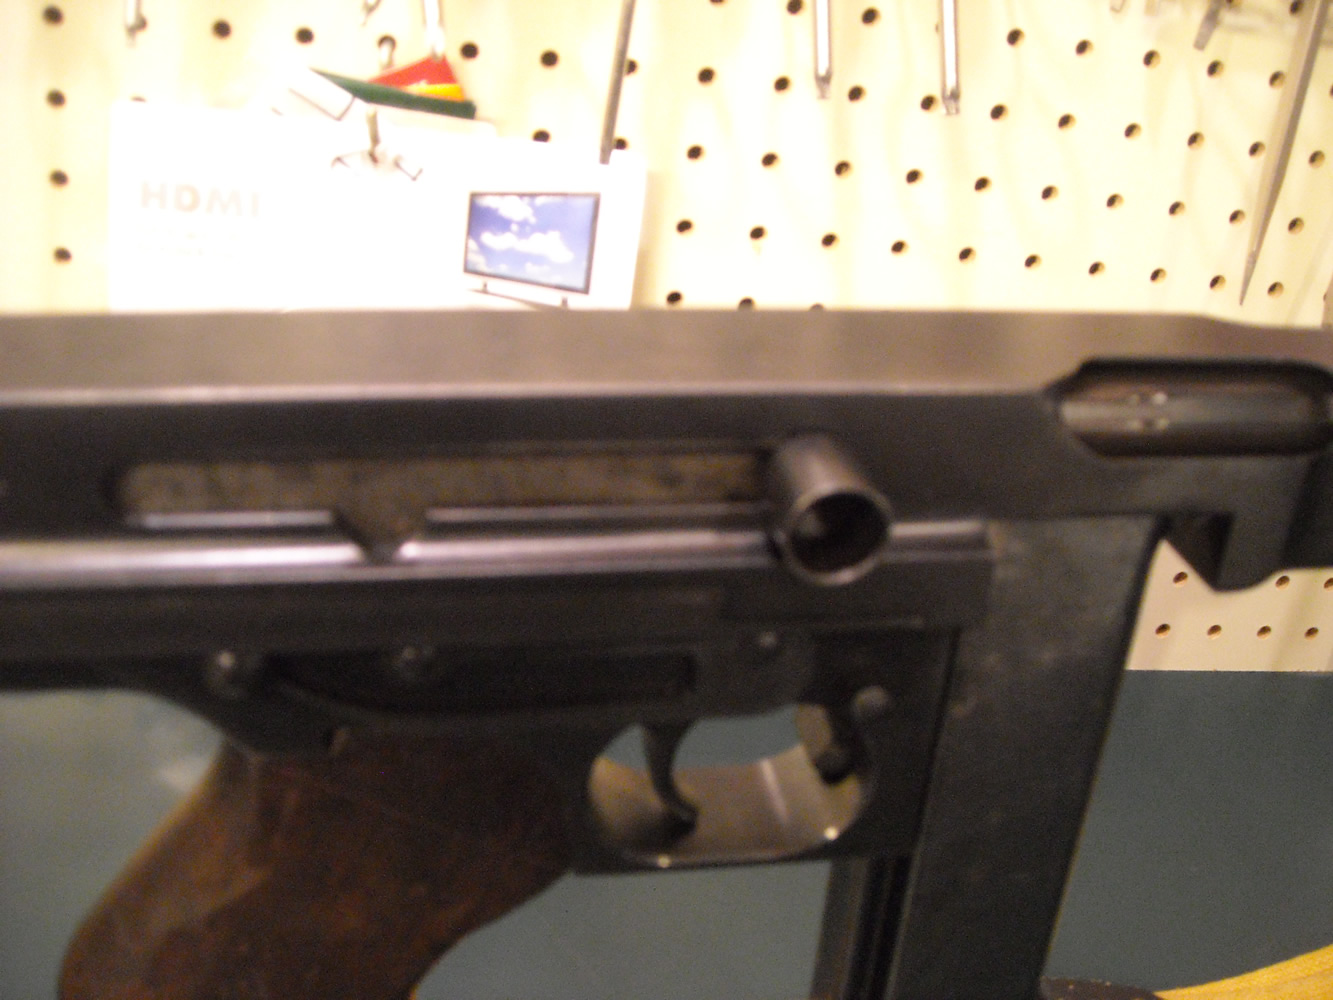 90th IDPG Auto Ordnance Semi-Auto Thompson M1 Review